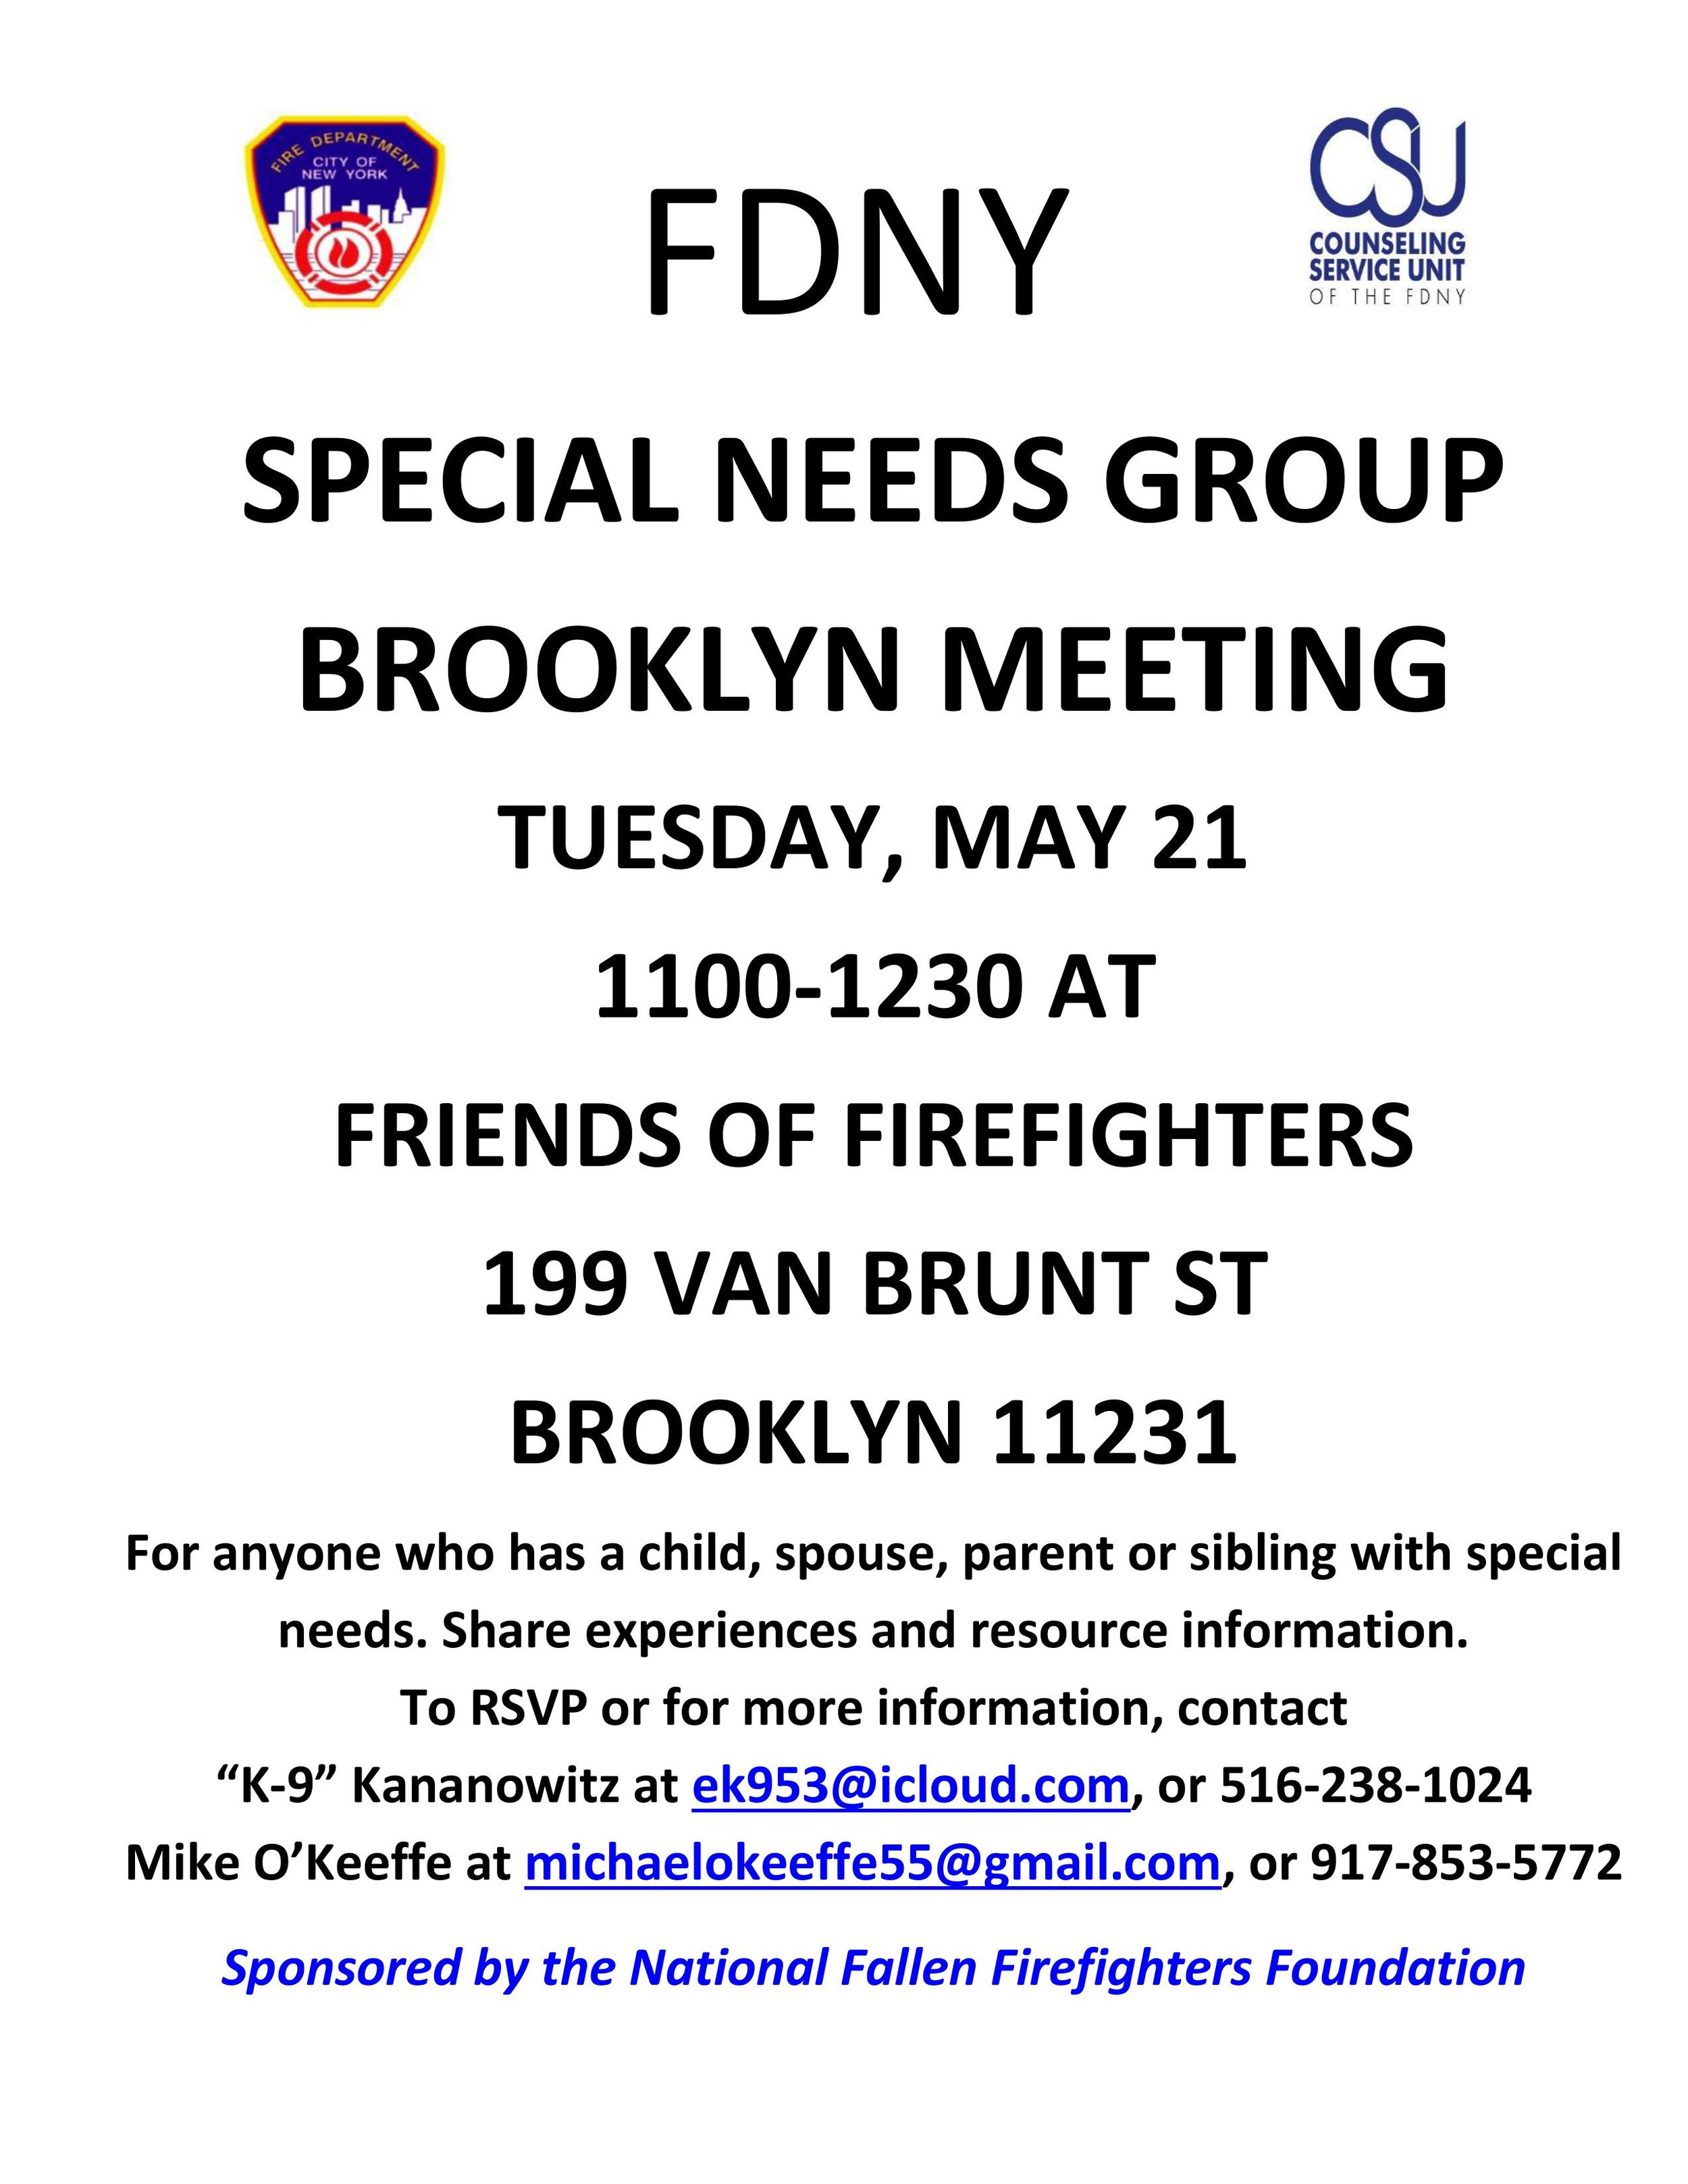 Special Needs Group Meeting 5-21-19.jpg